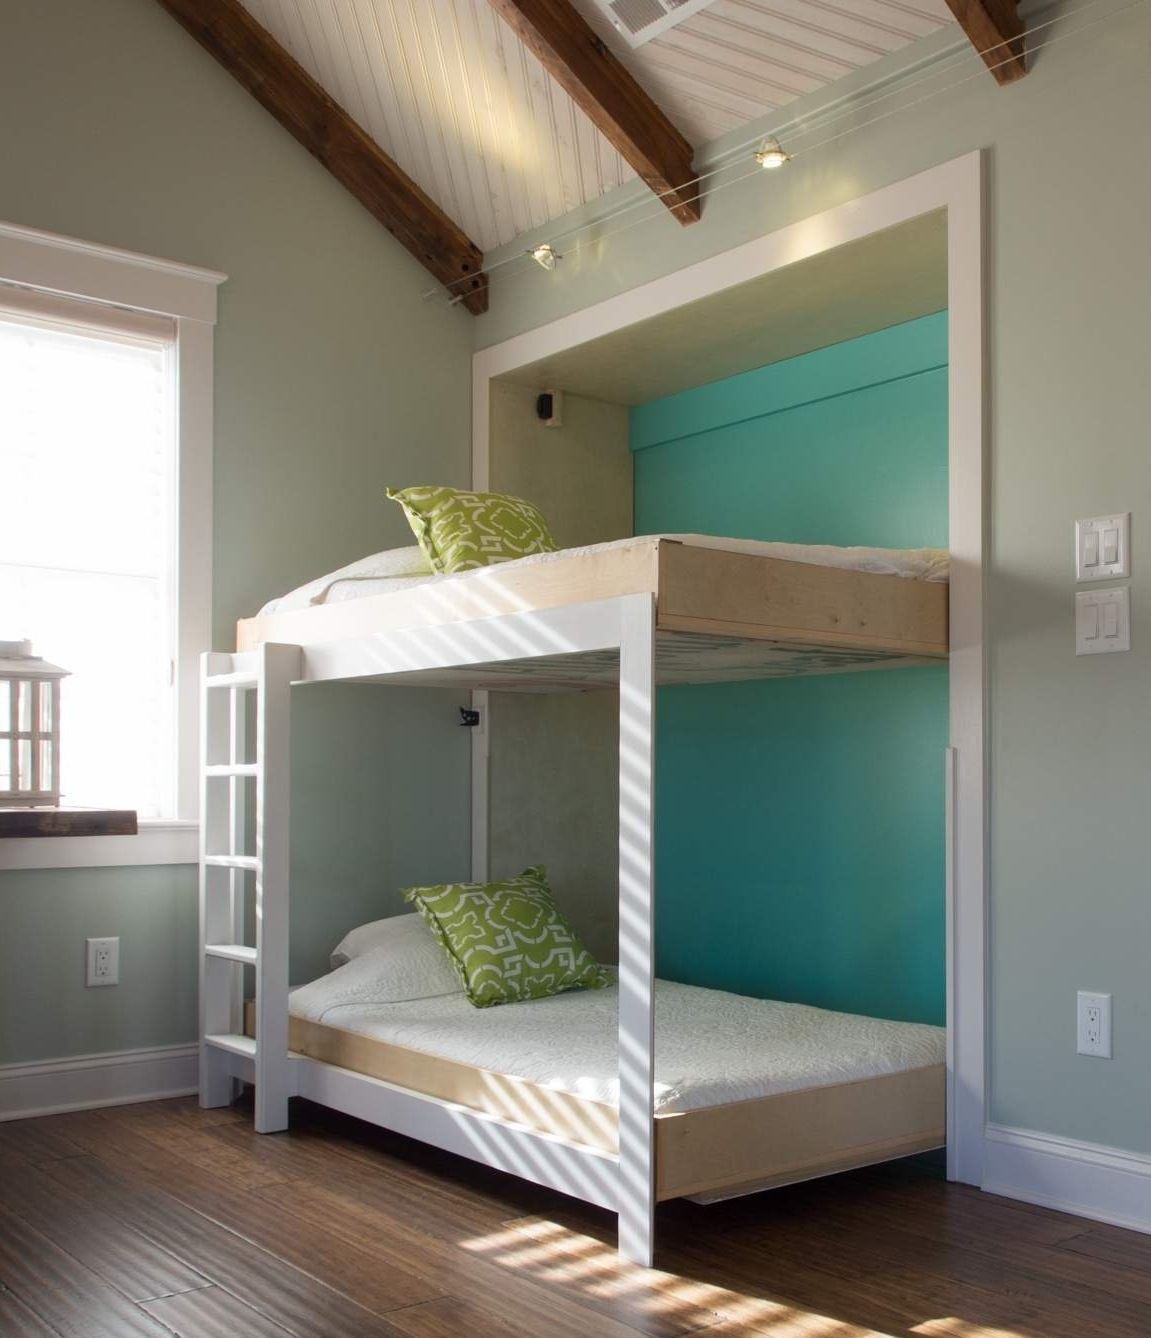 Genius! DIY Murphy Bed Murphy Beds, Diy Murphy Bed and Beds